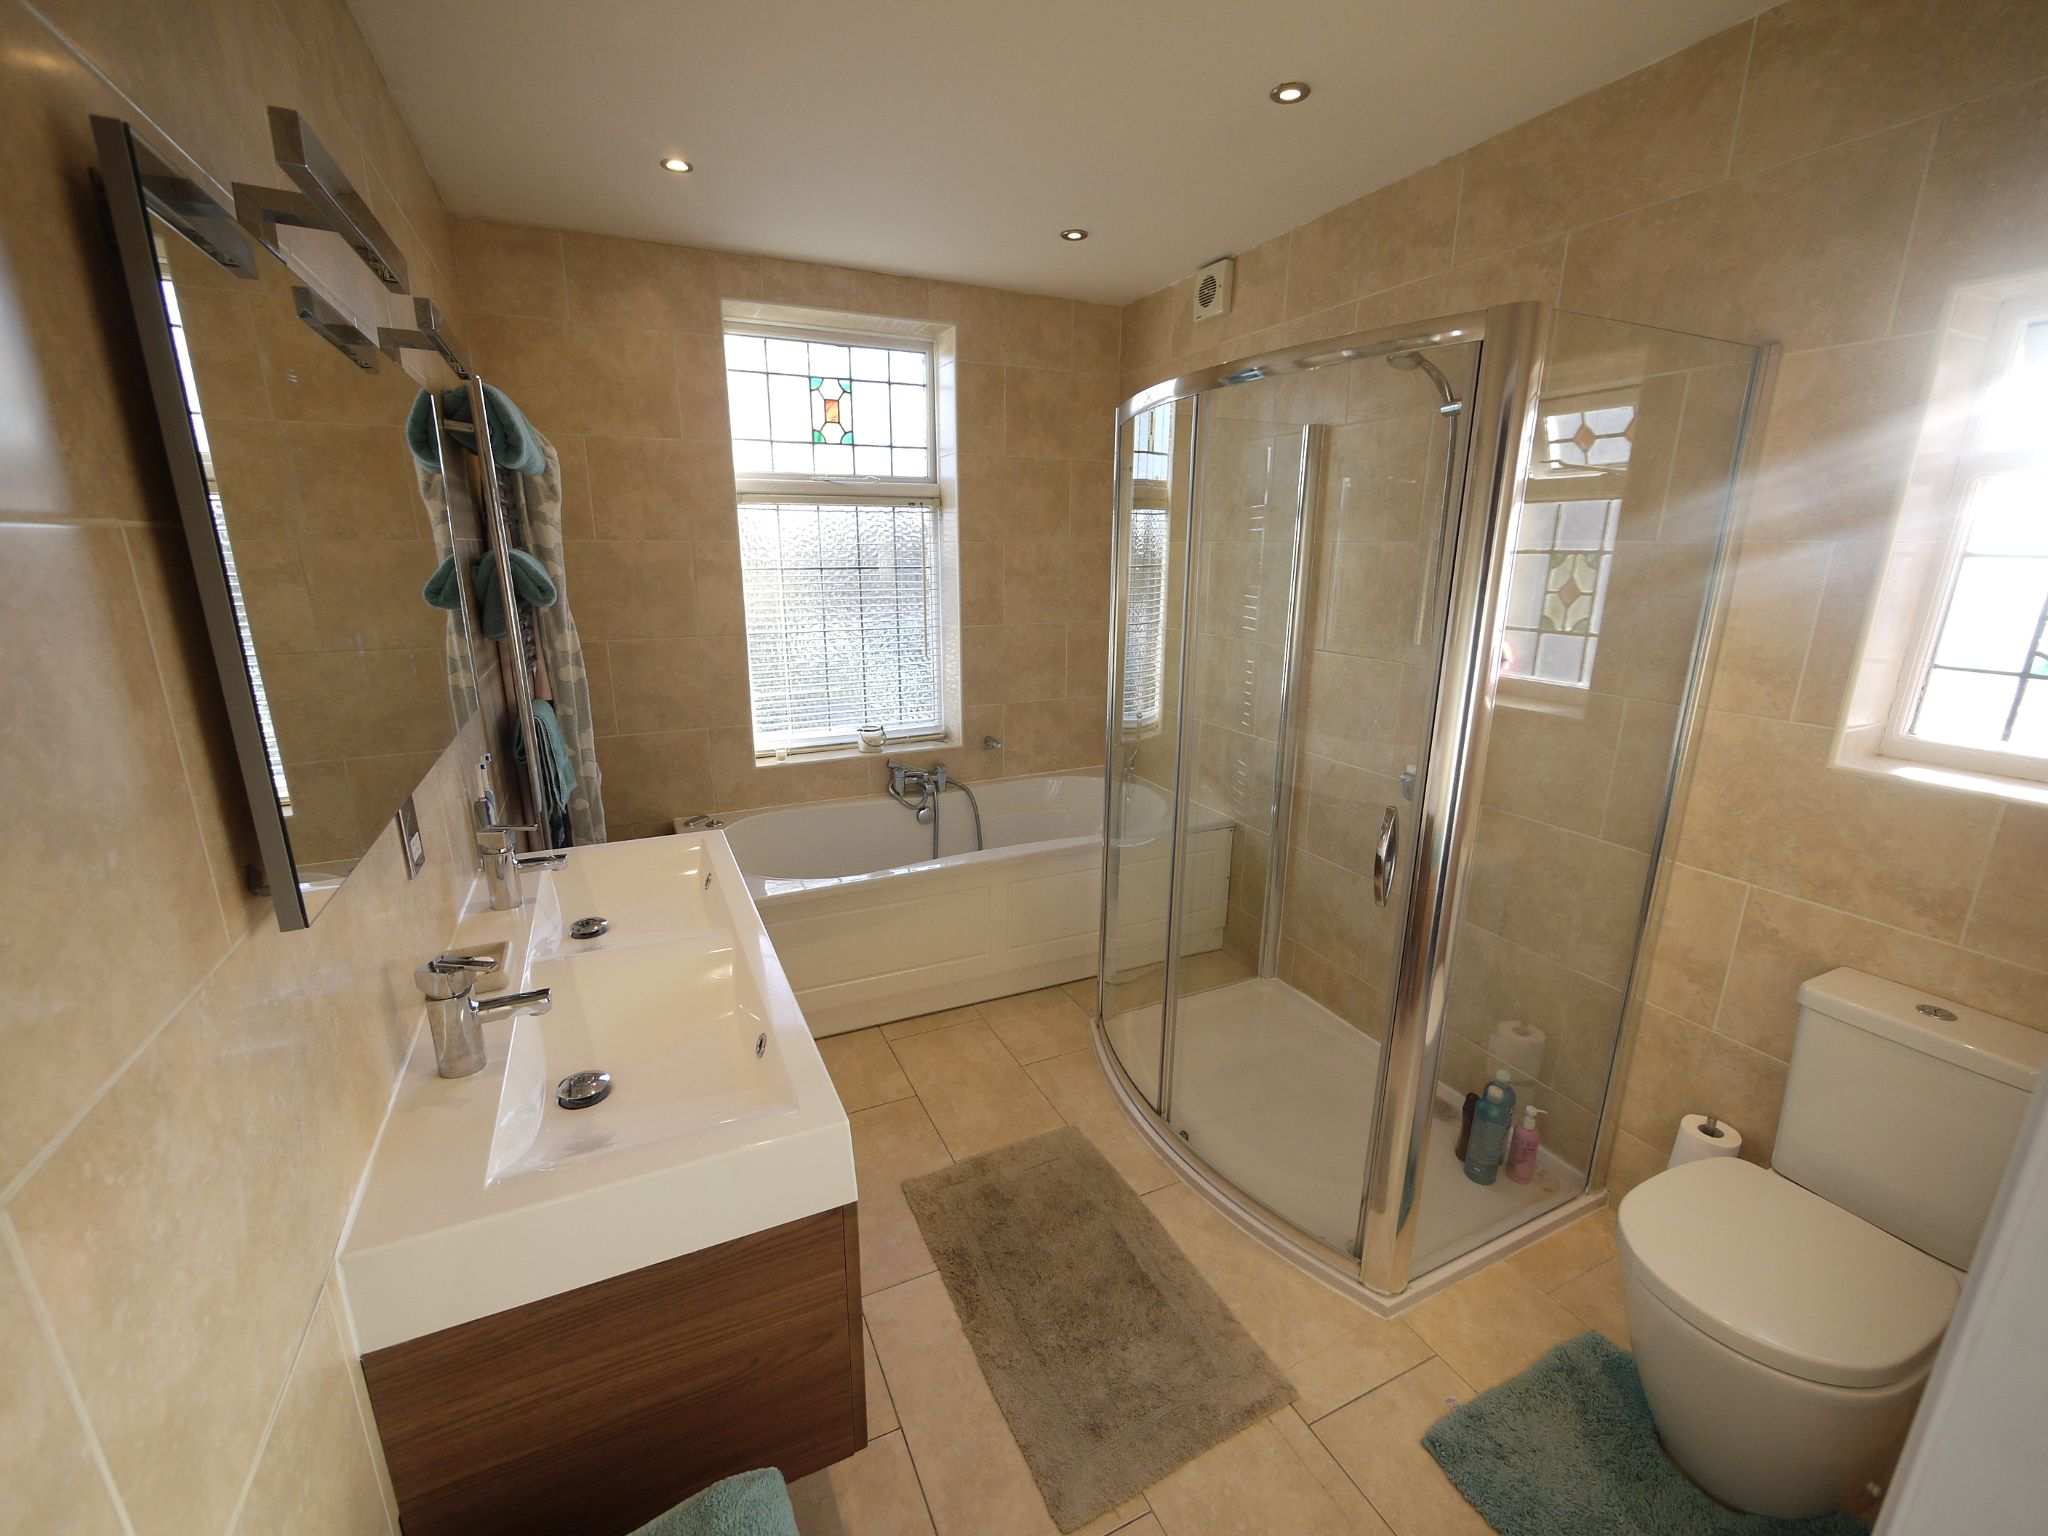 4 bedroom semi-detached house SSTC in Brighouse - Photograph 8.